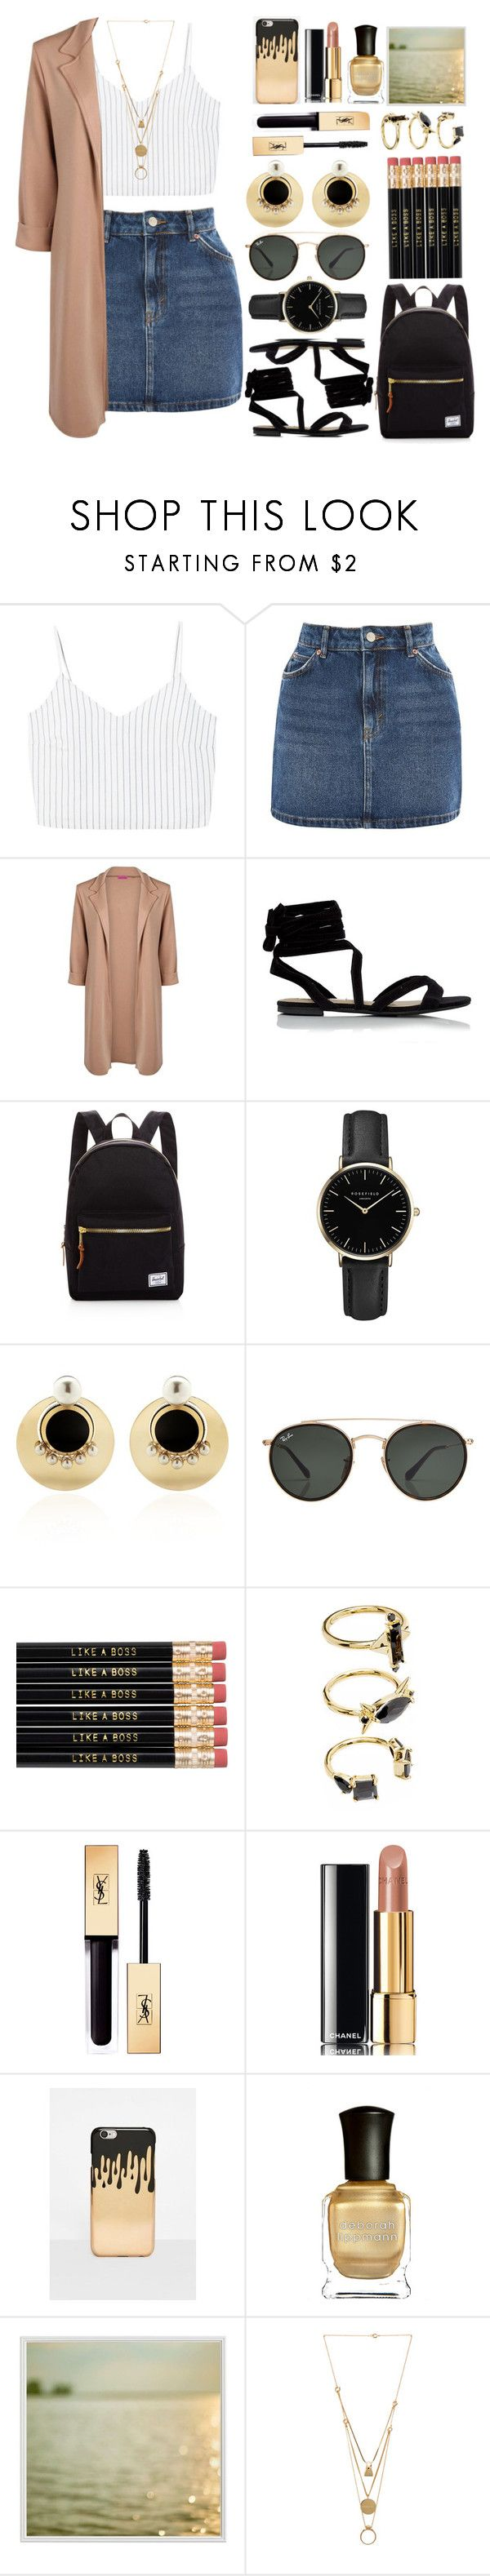 """lively"" by dandydesigns ❤ liked on Polyvore featuring MANGO, Topshop, Boohoo, Herschel Supply Co., ROSEFIELD, Anton Heunis, Ray-Ban, Noir Jewelry, Chanel and Missguided"